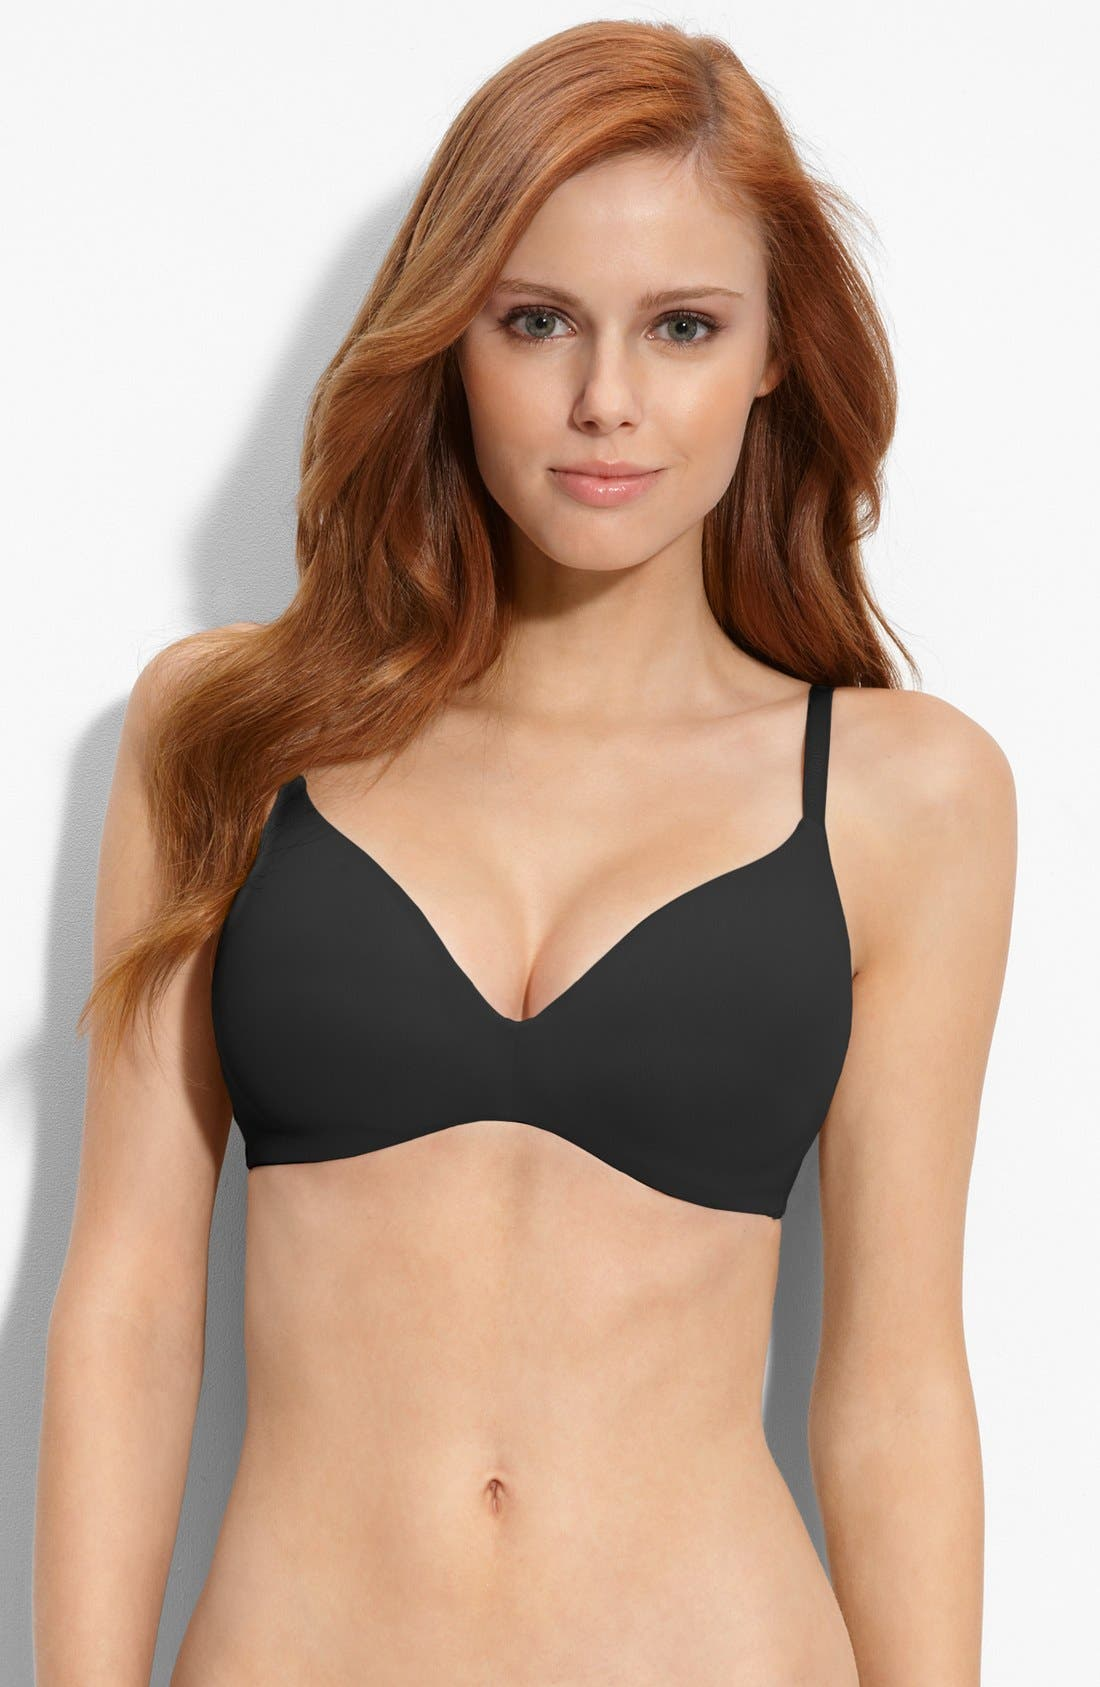 'F2781' Soft Cup Contour Bra,                         Main,                         color, BLACK